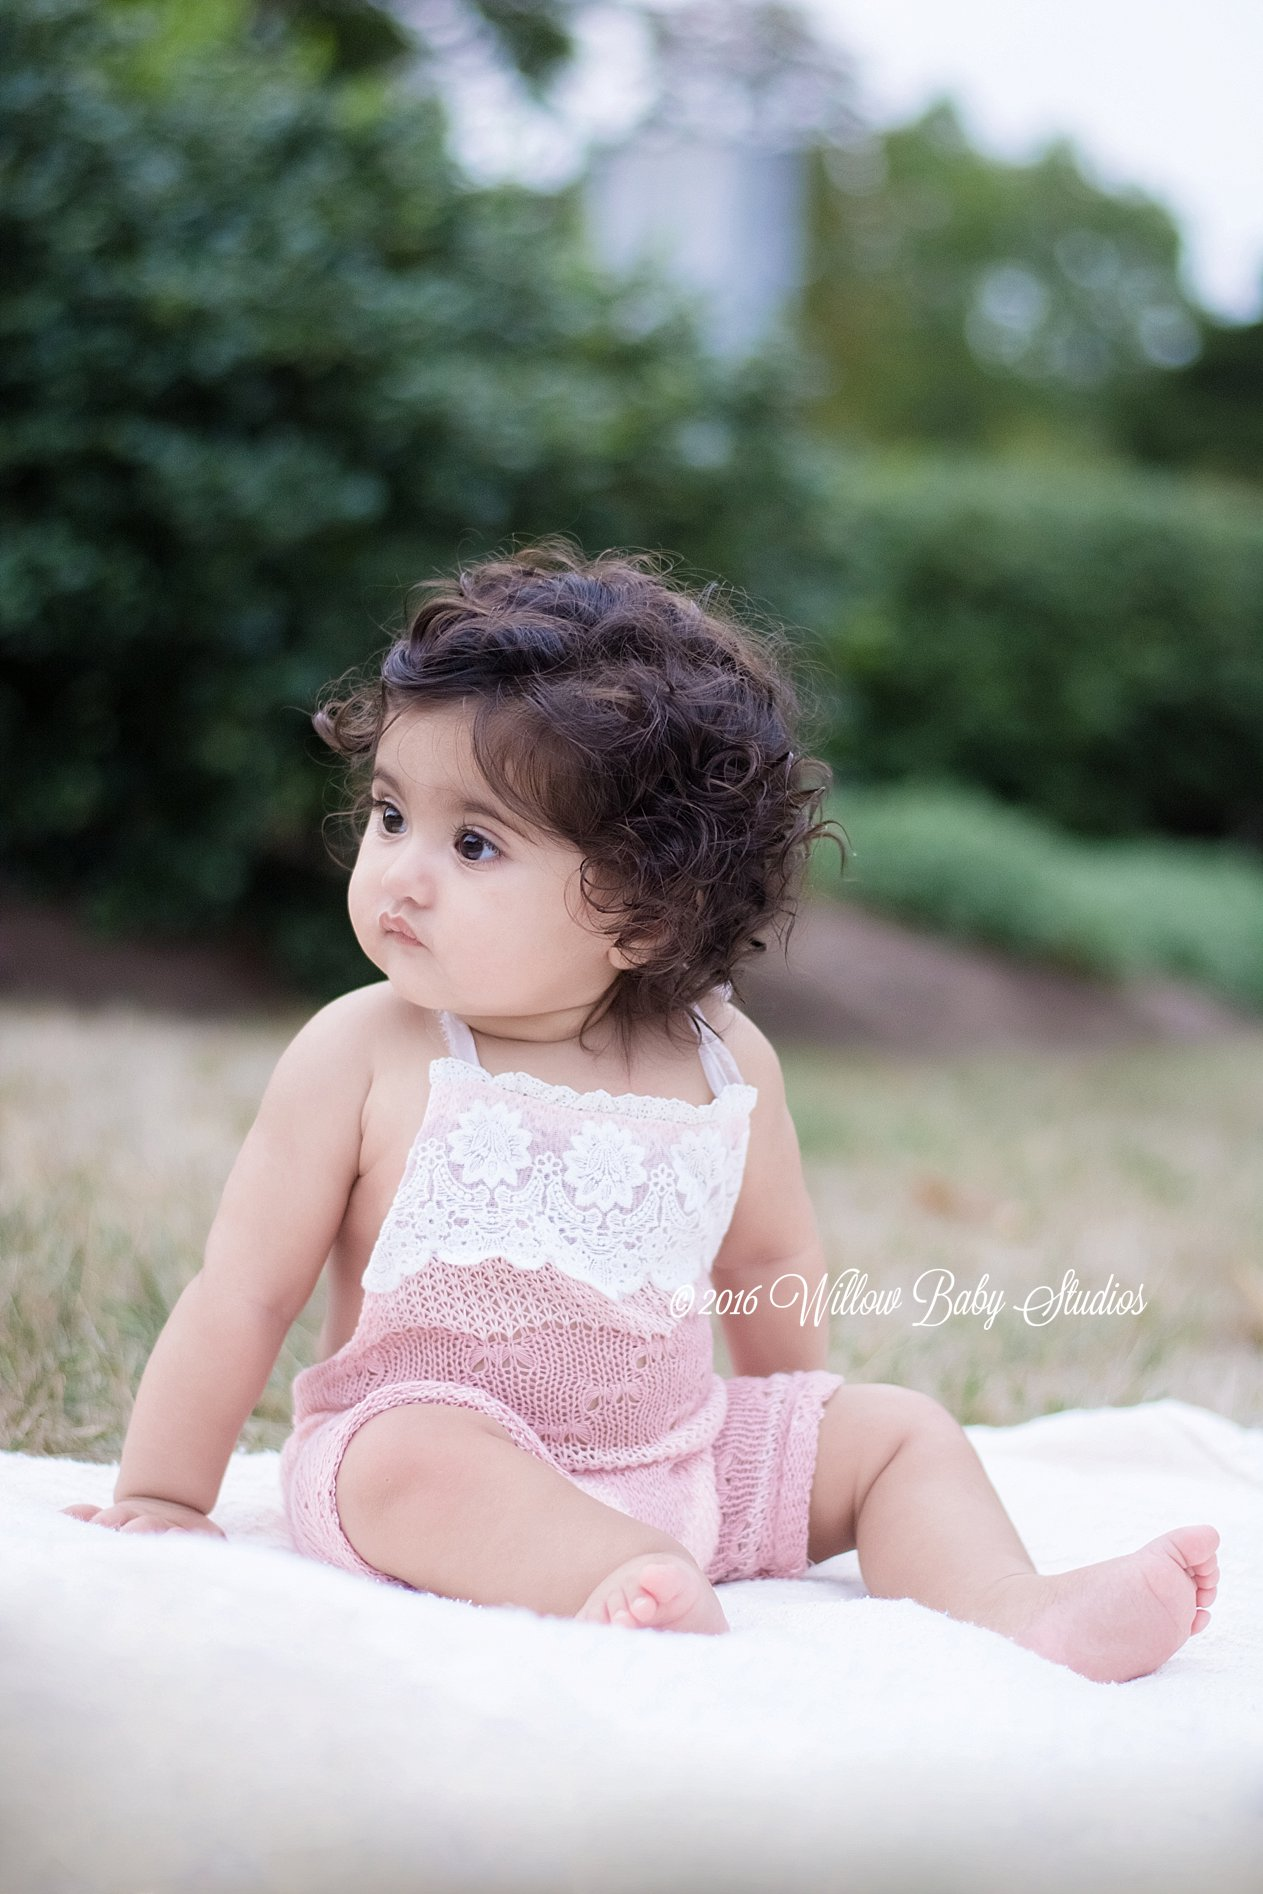 6 month old in pink romper sitting on a blanket in the grass